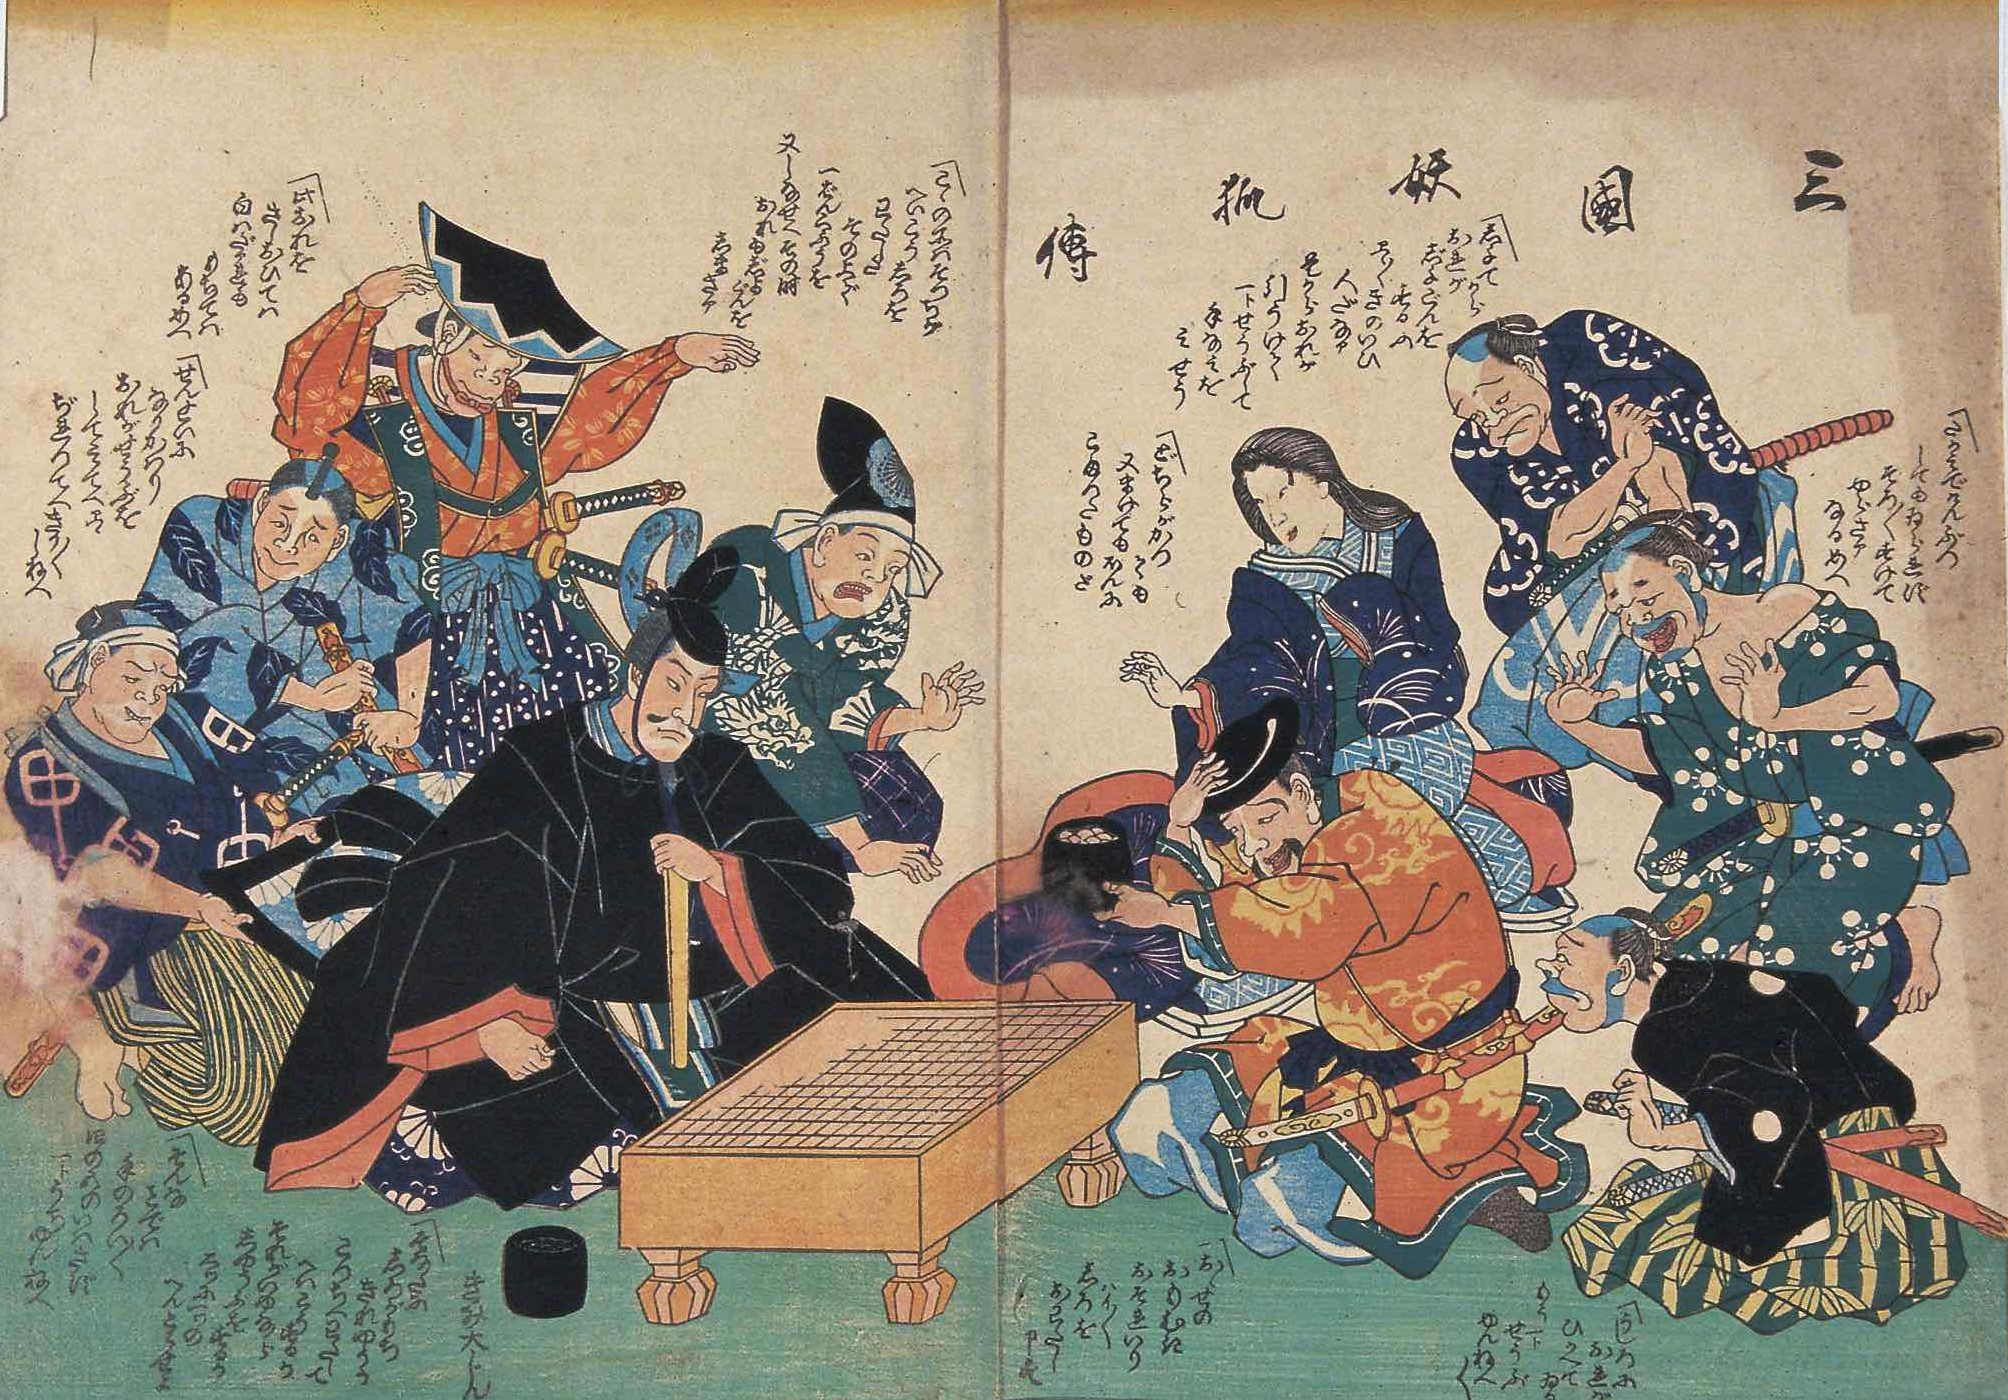 An illustration depicting a crowd of people reacting to the developments in a game of go between the emperor of Japan and the last shogun of Edo Castle.